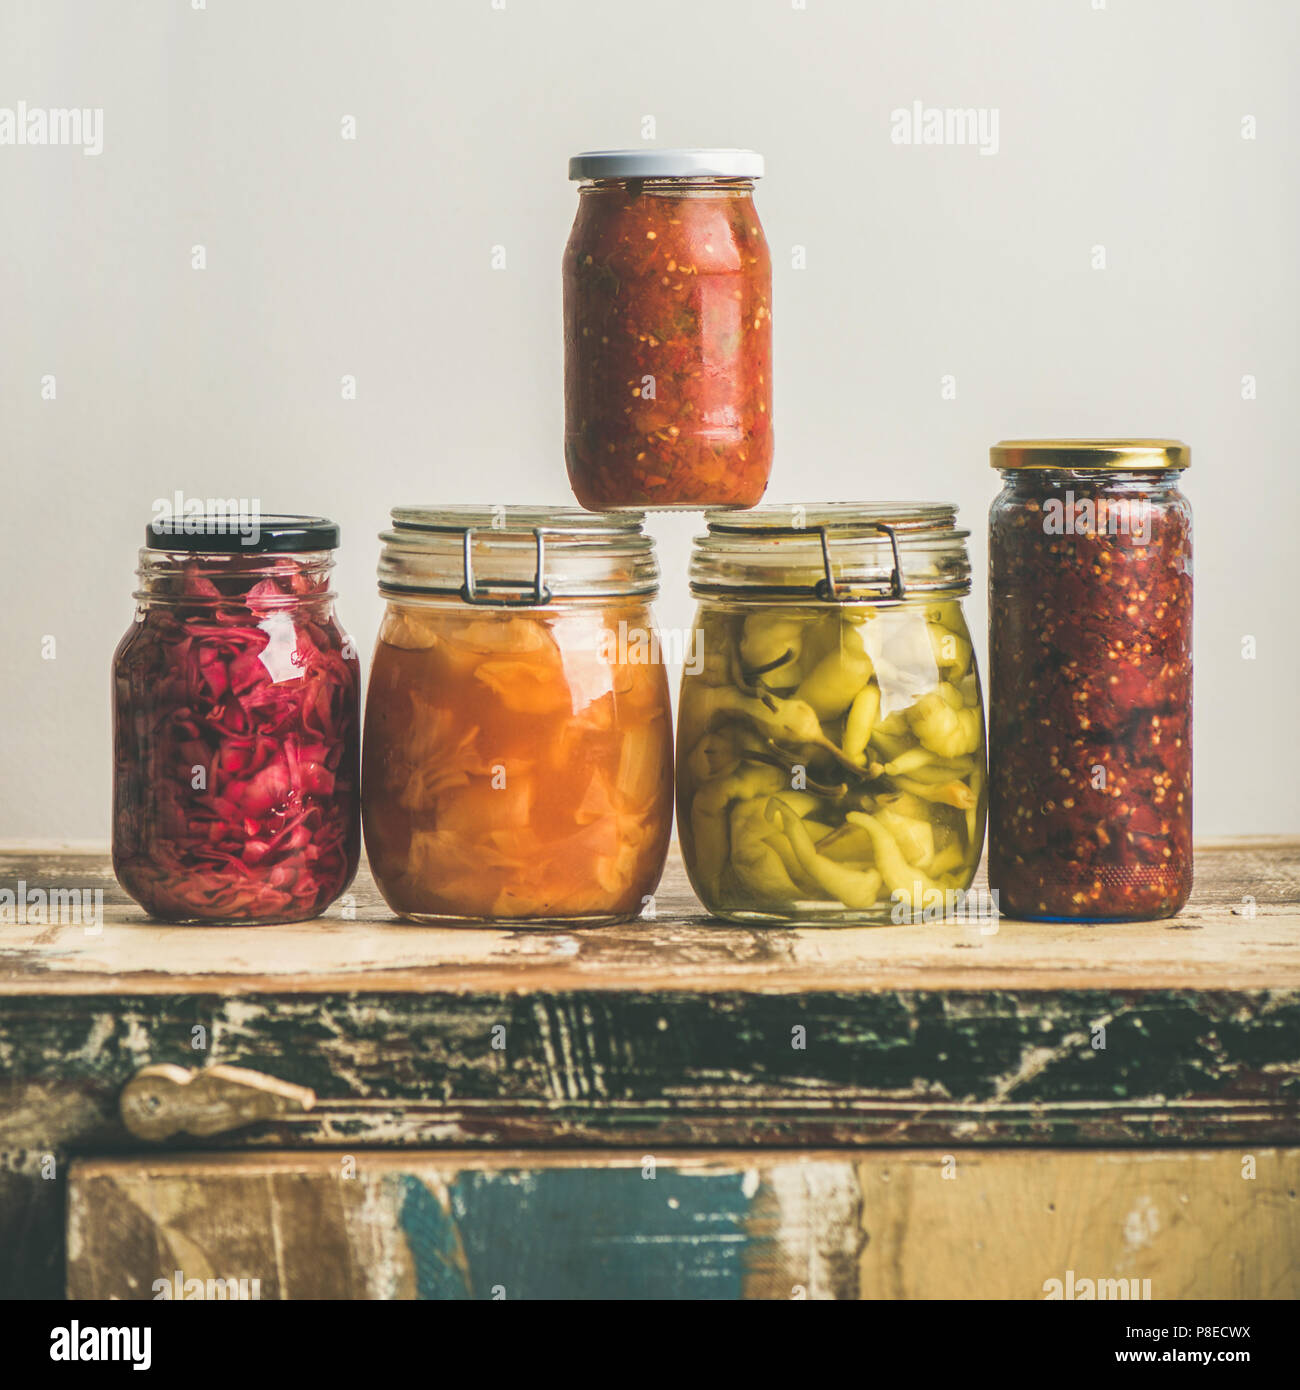 Autumn seasonal pickled or fermented colorful vegetables, square crop - Stock Image